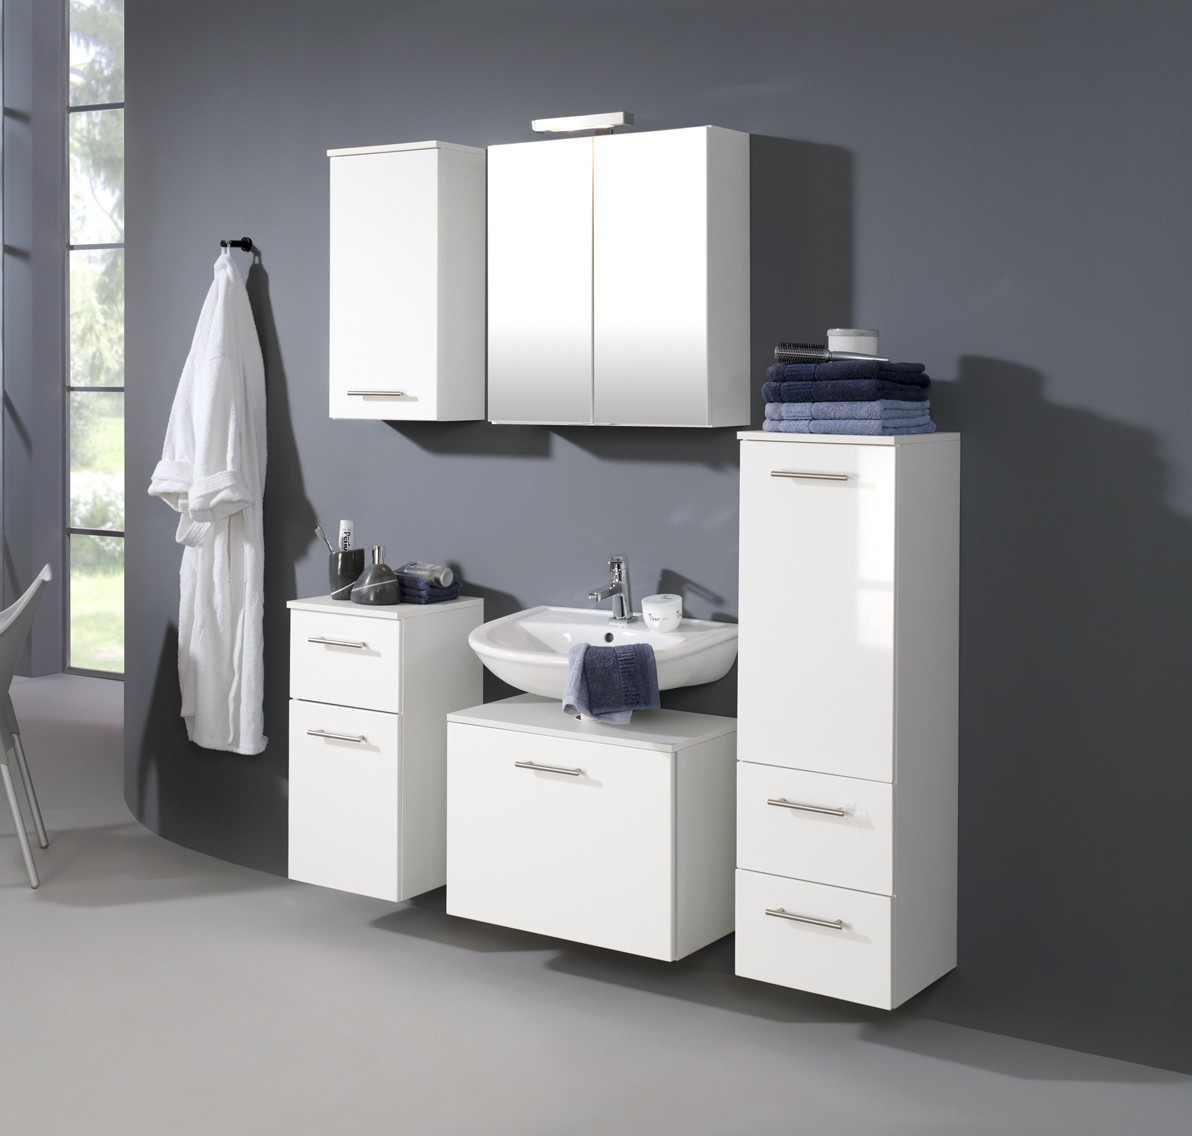 neu badezimmer unterschrank blanco badschrank. Black Bedroom Furniture Sets. Home Design Ideas